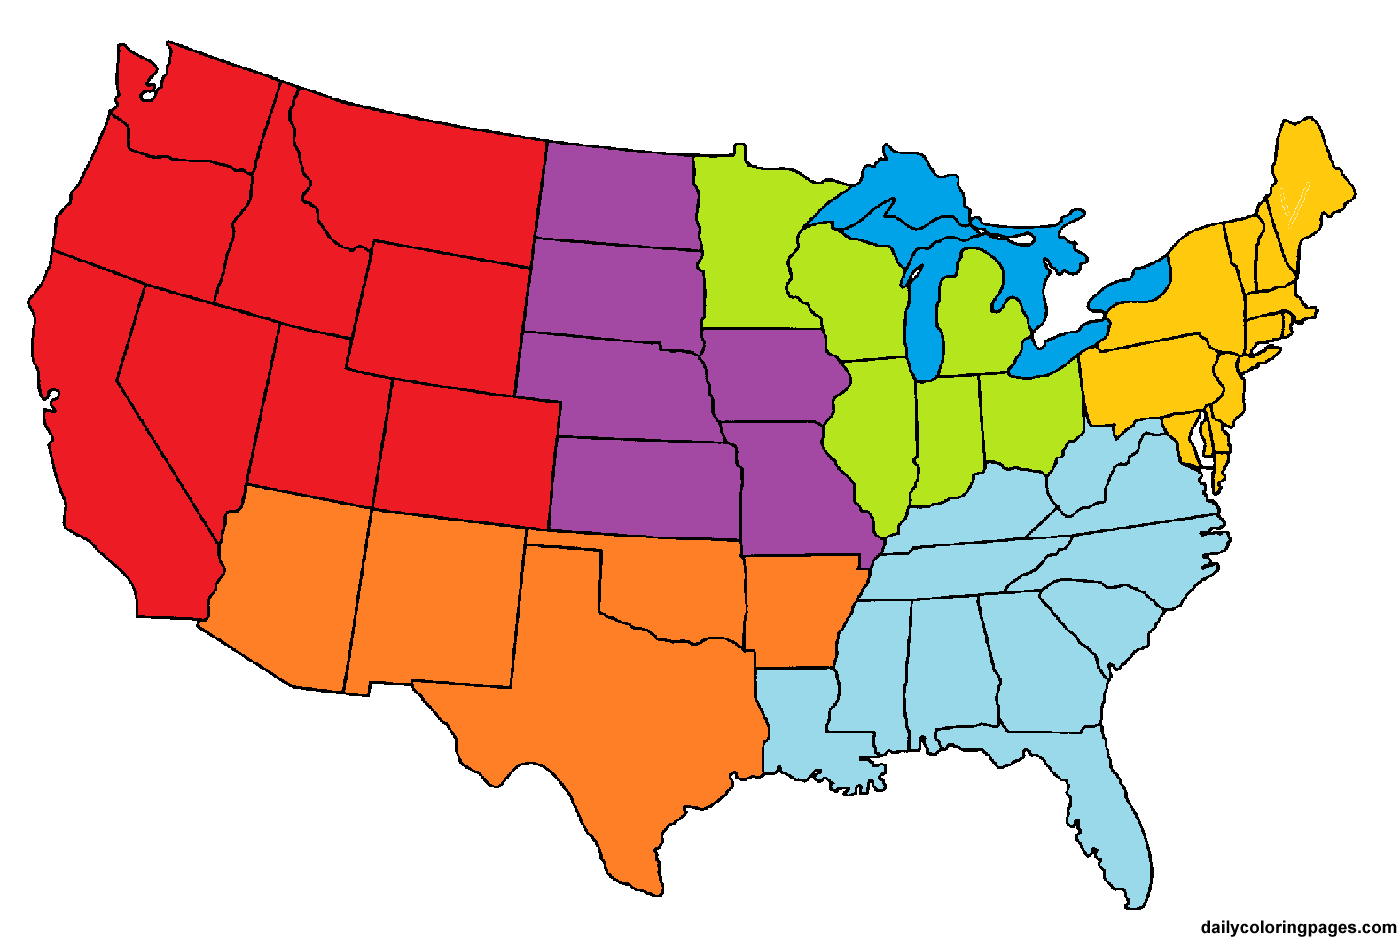 50 States And Capitals Song By Region Exactly What We Need For My Son S 4th Grade Social